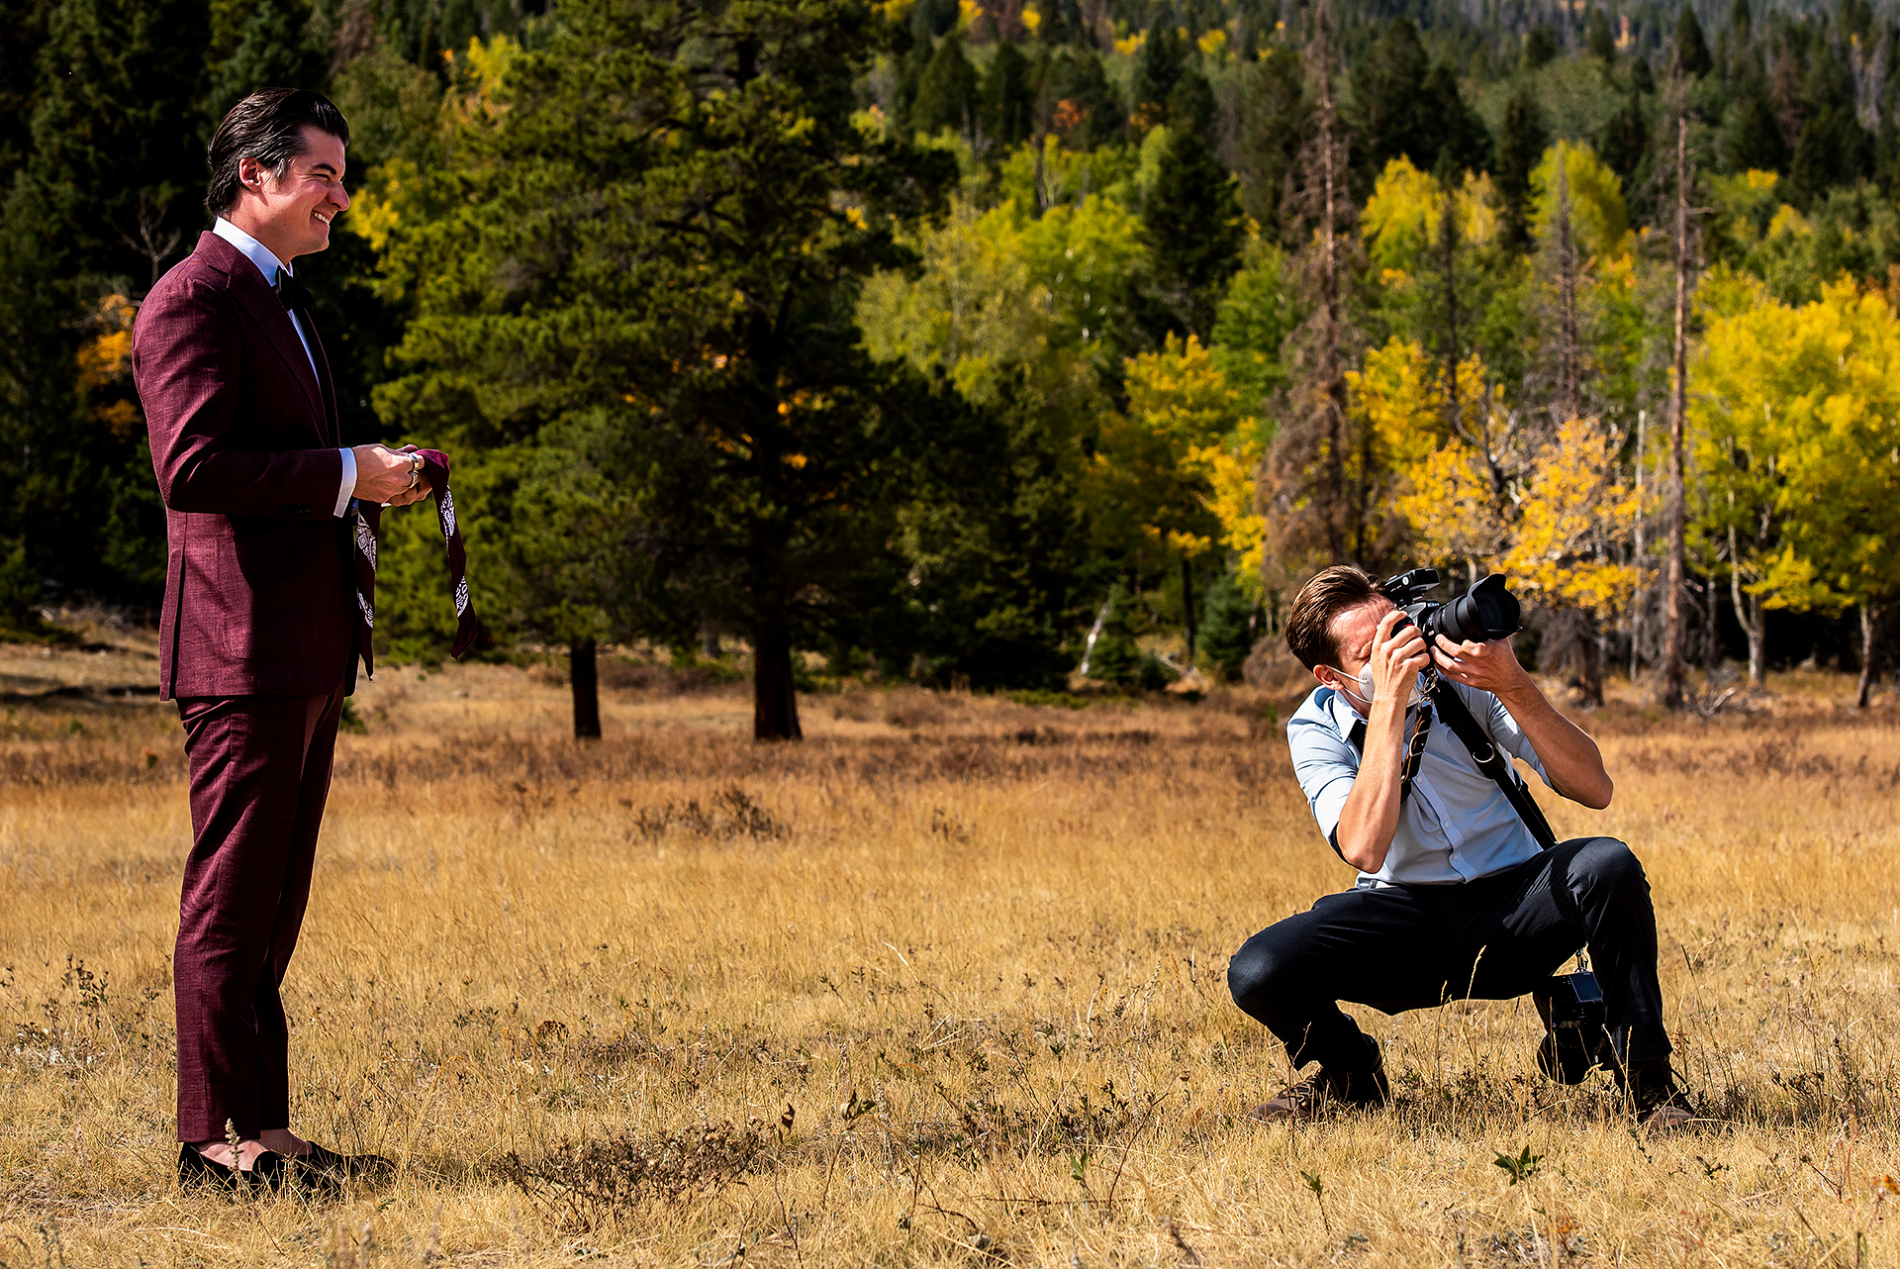 Outdoor wedding photographers shooting a wedding in Rocky Mountain National Park